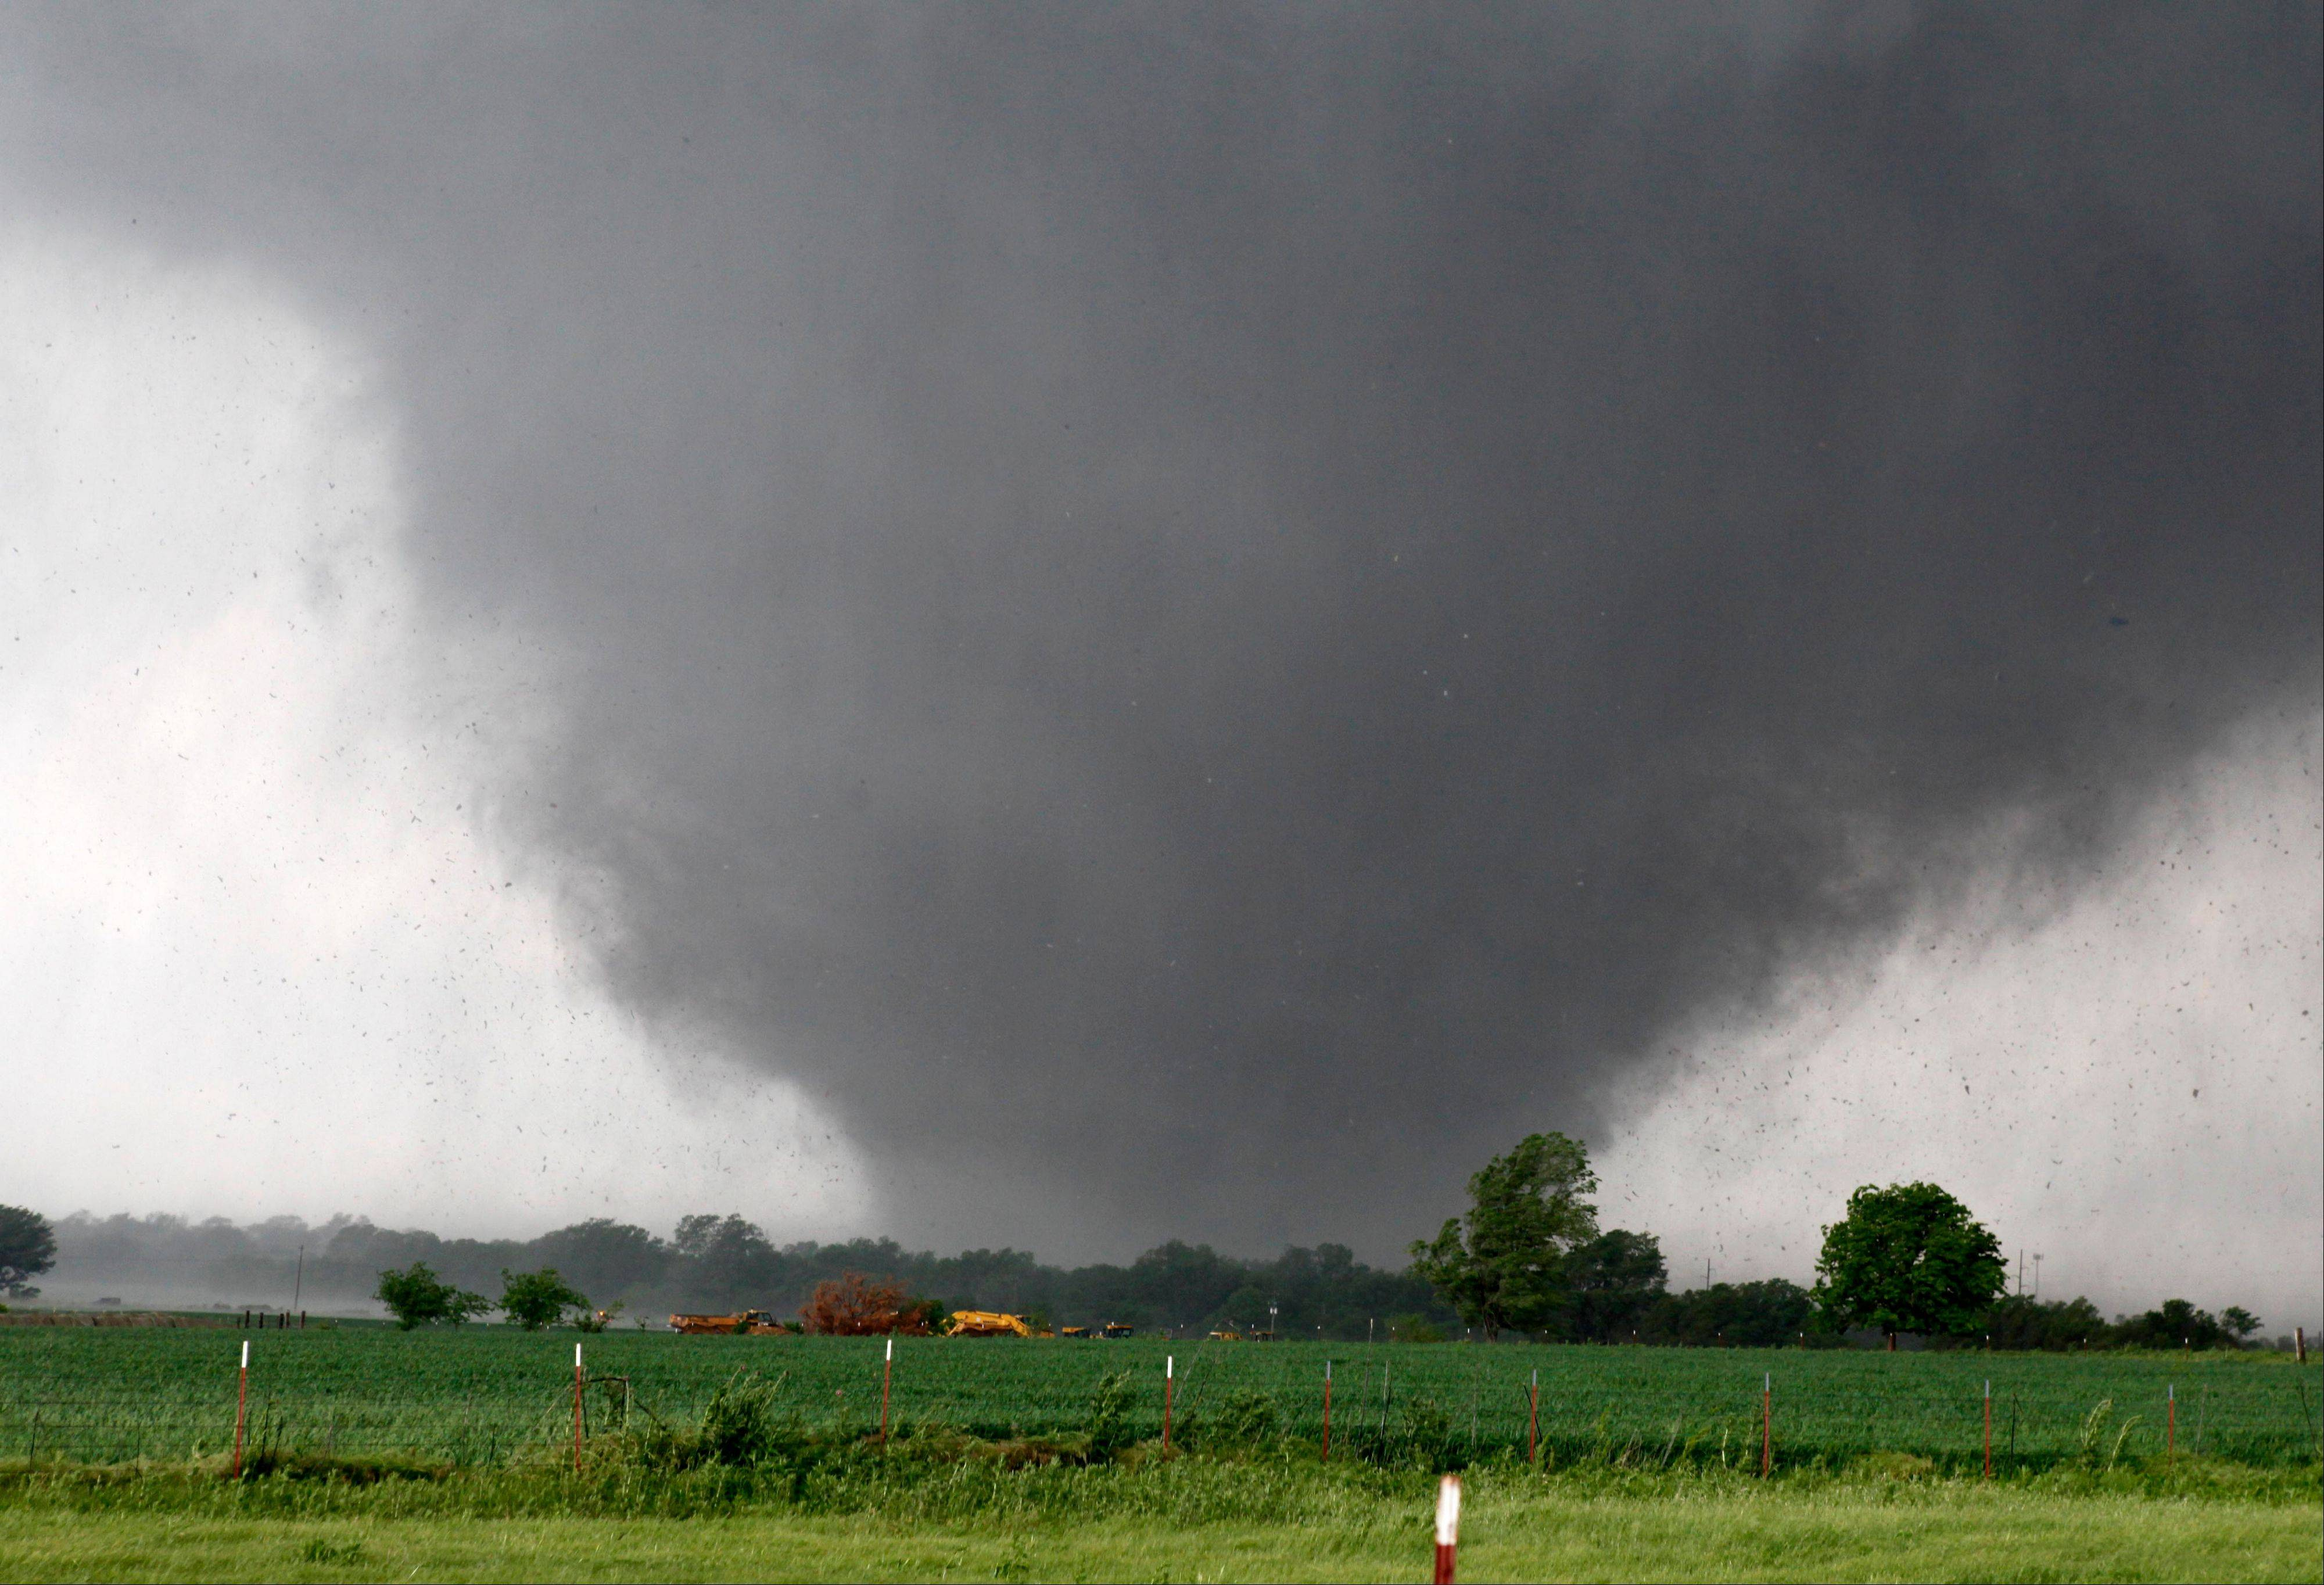 A tornado passes across south Oklahoma City, Monday, May 20, 2013. A monstrous tornado roared through the Oklahoma City suburbs, flattening entire neighborhoods with winds up to 200 mph, setting buildings on fire and landing a direct blow on an elementary school.